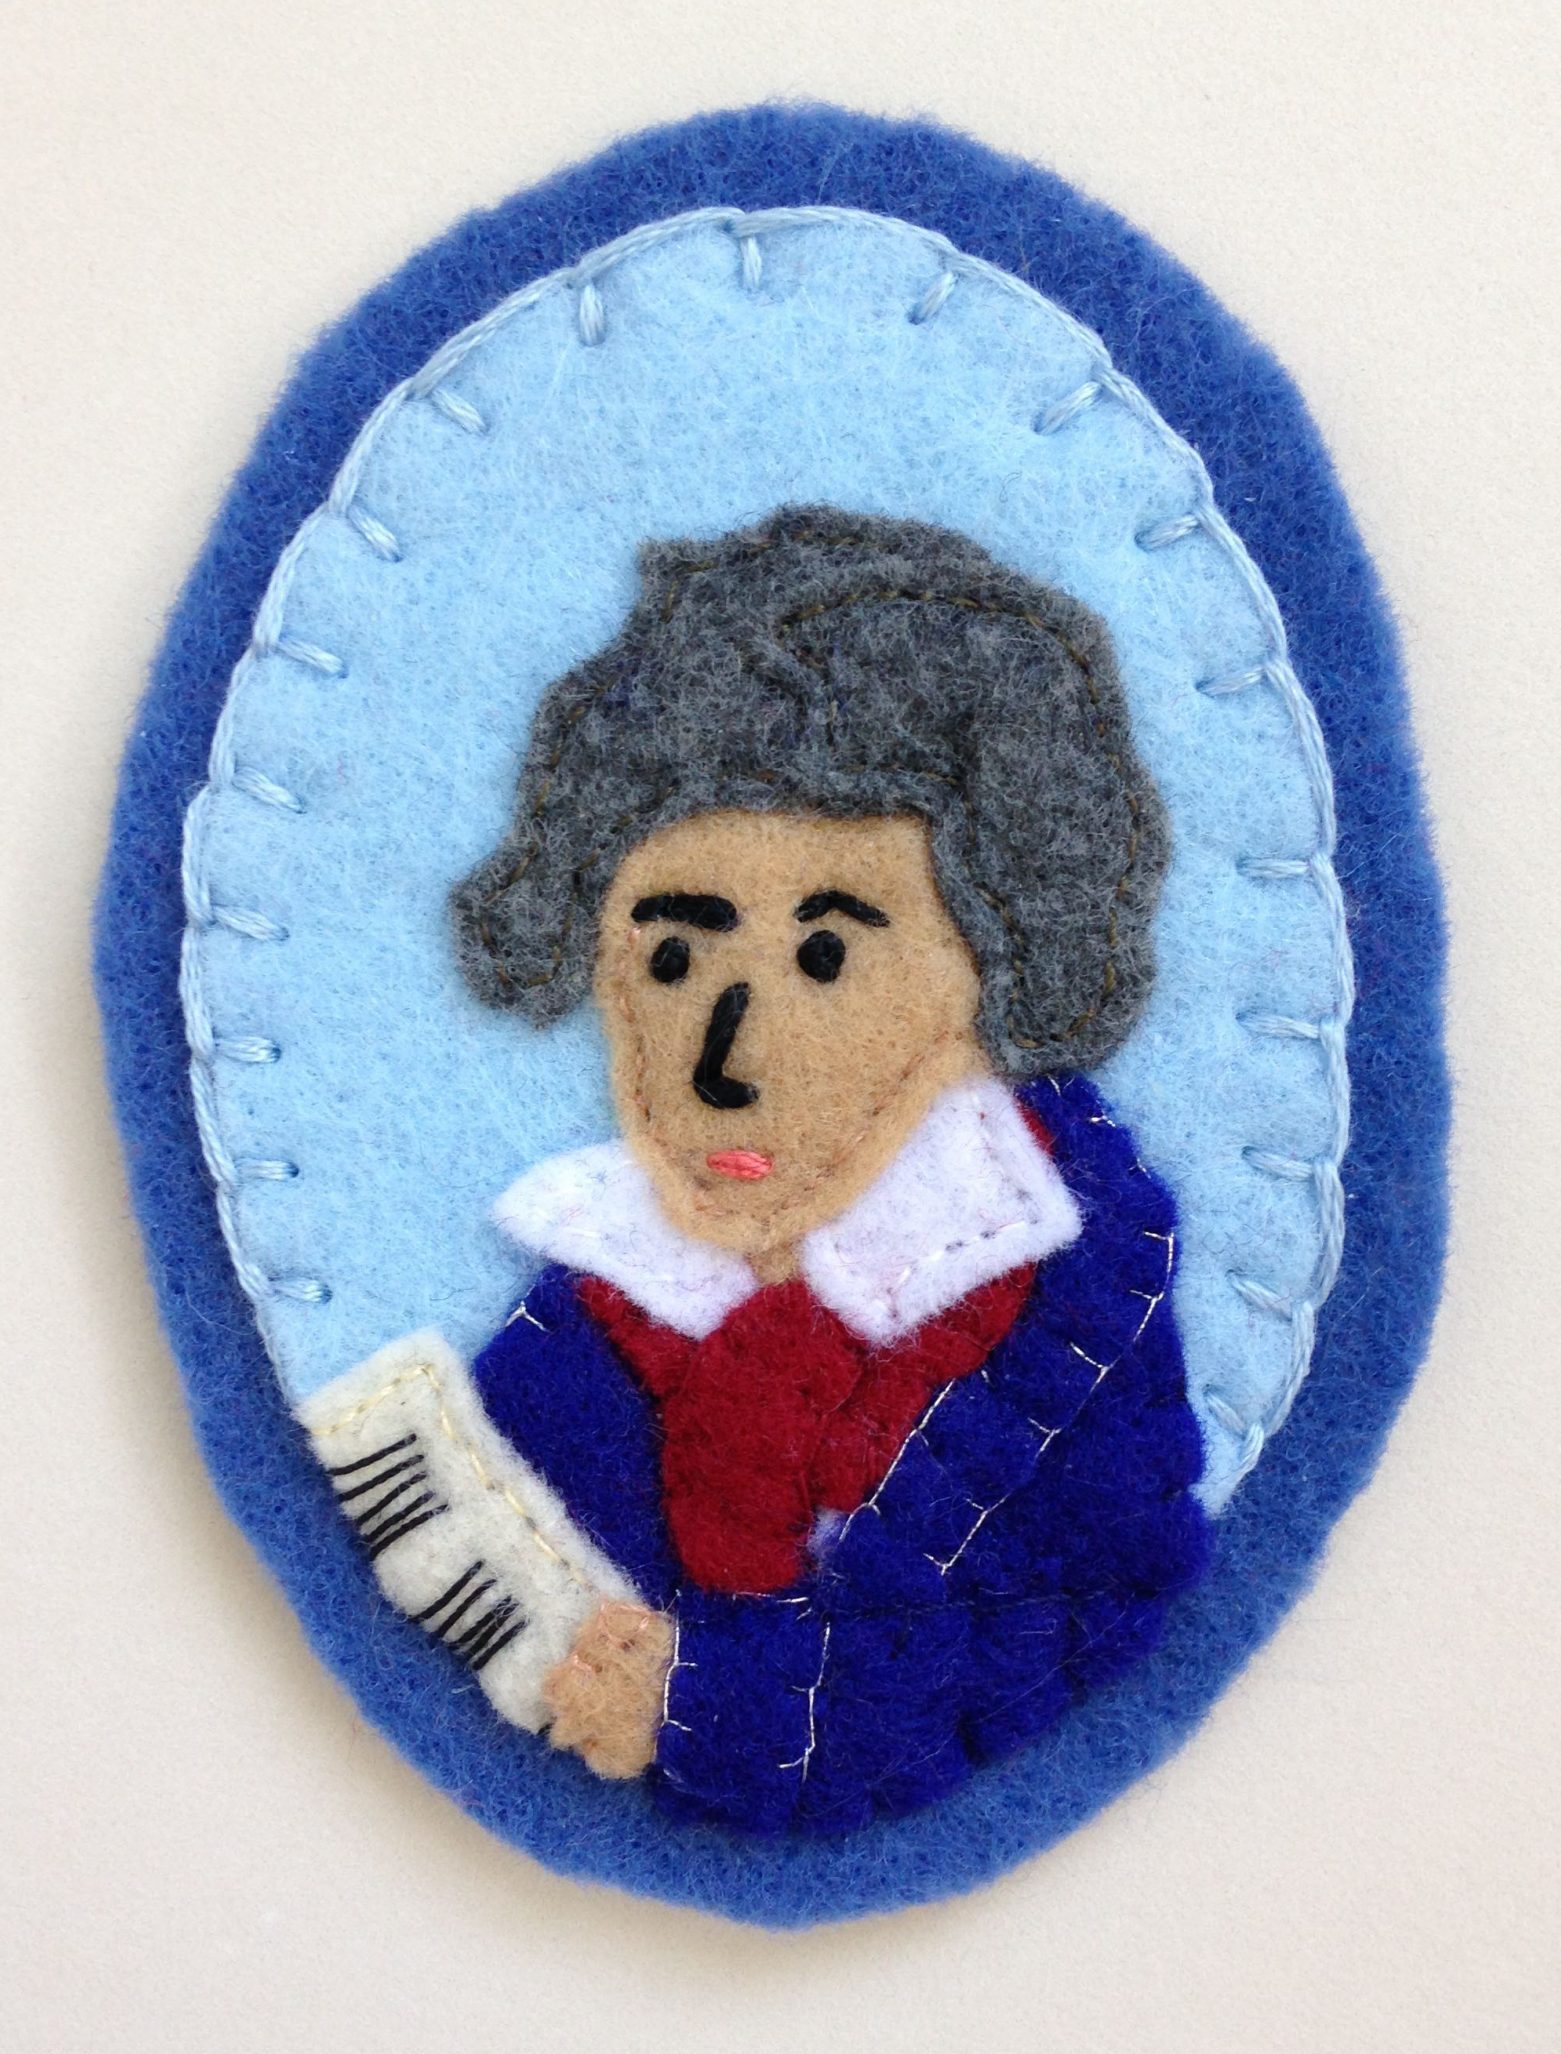 Ludwig van Beethoven Sew-on Patch